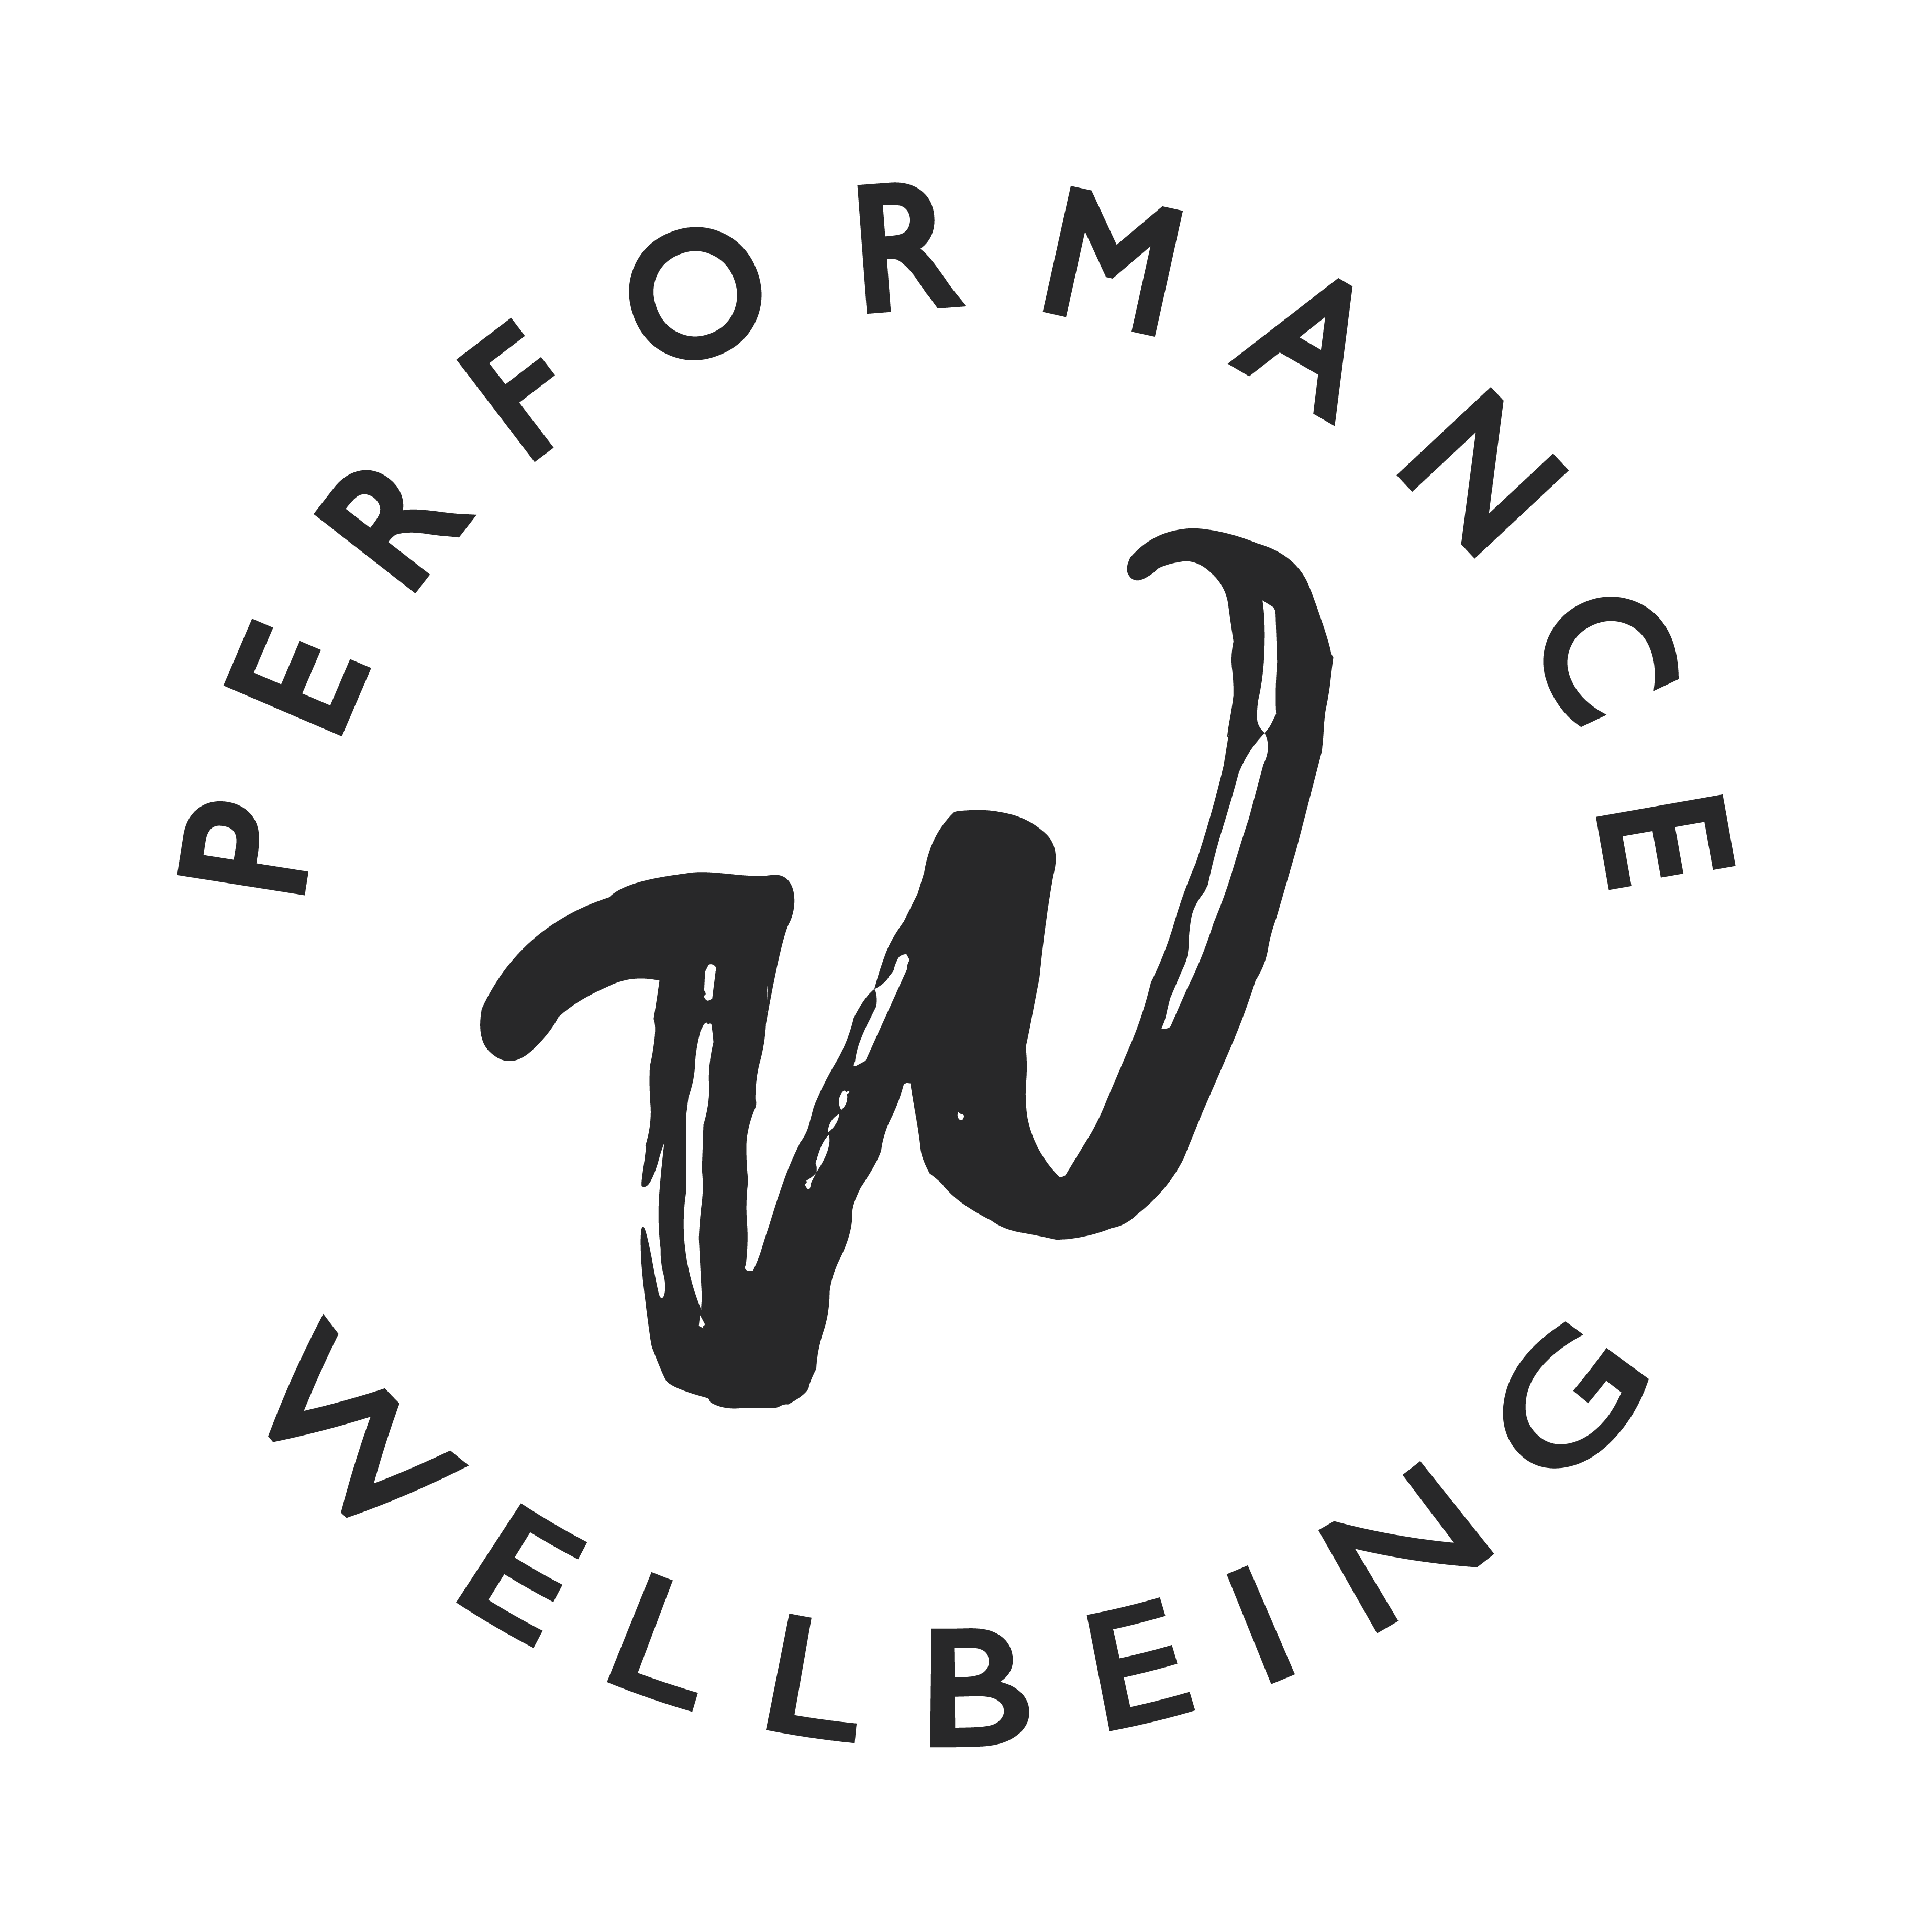 PERFORMANCE WELLBEING